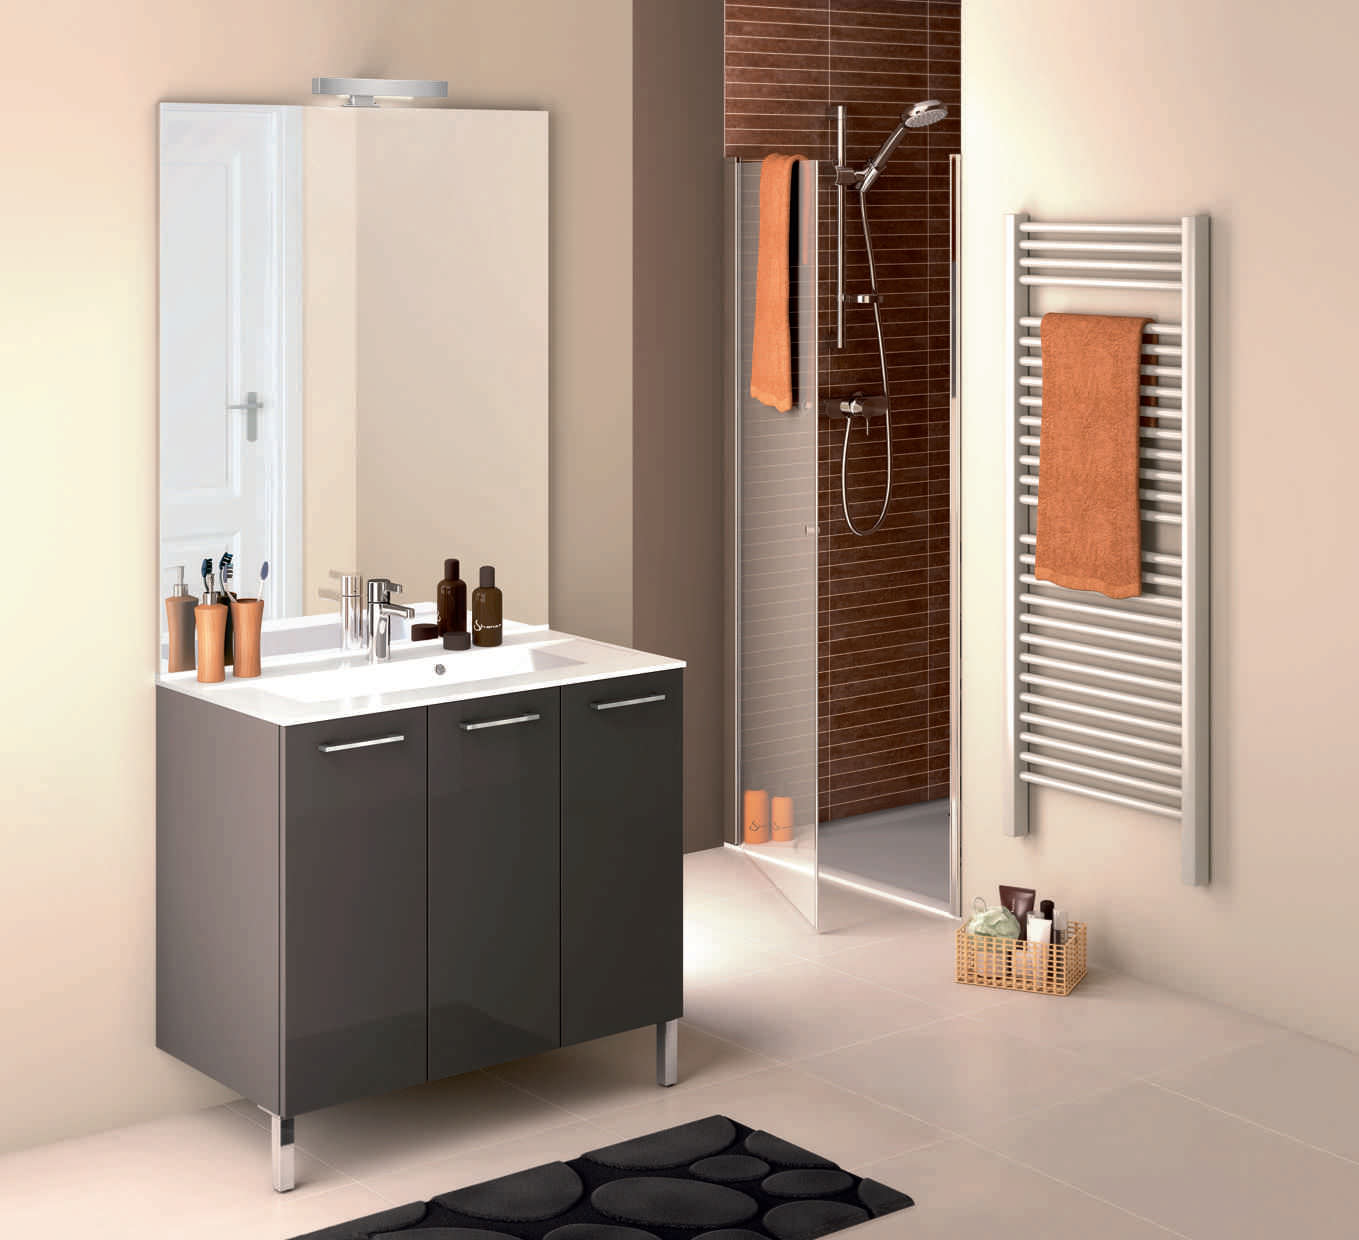 miroir a poser au sol meuble salle de bain double vasques cm blanc brillant poser au. Black Bedroom Furniture Sets. Home Design Ideas